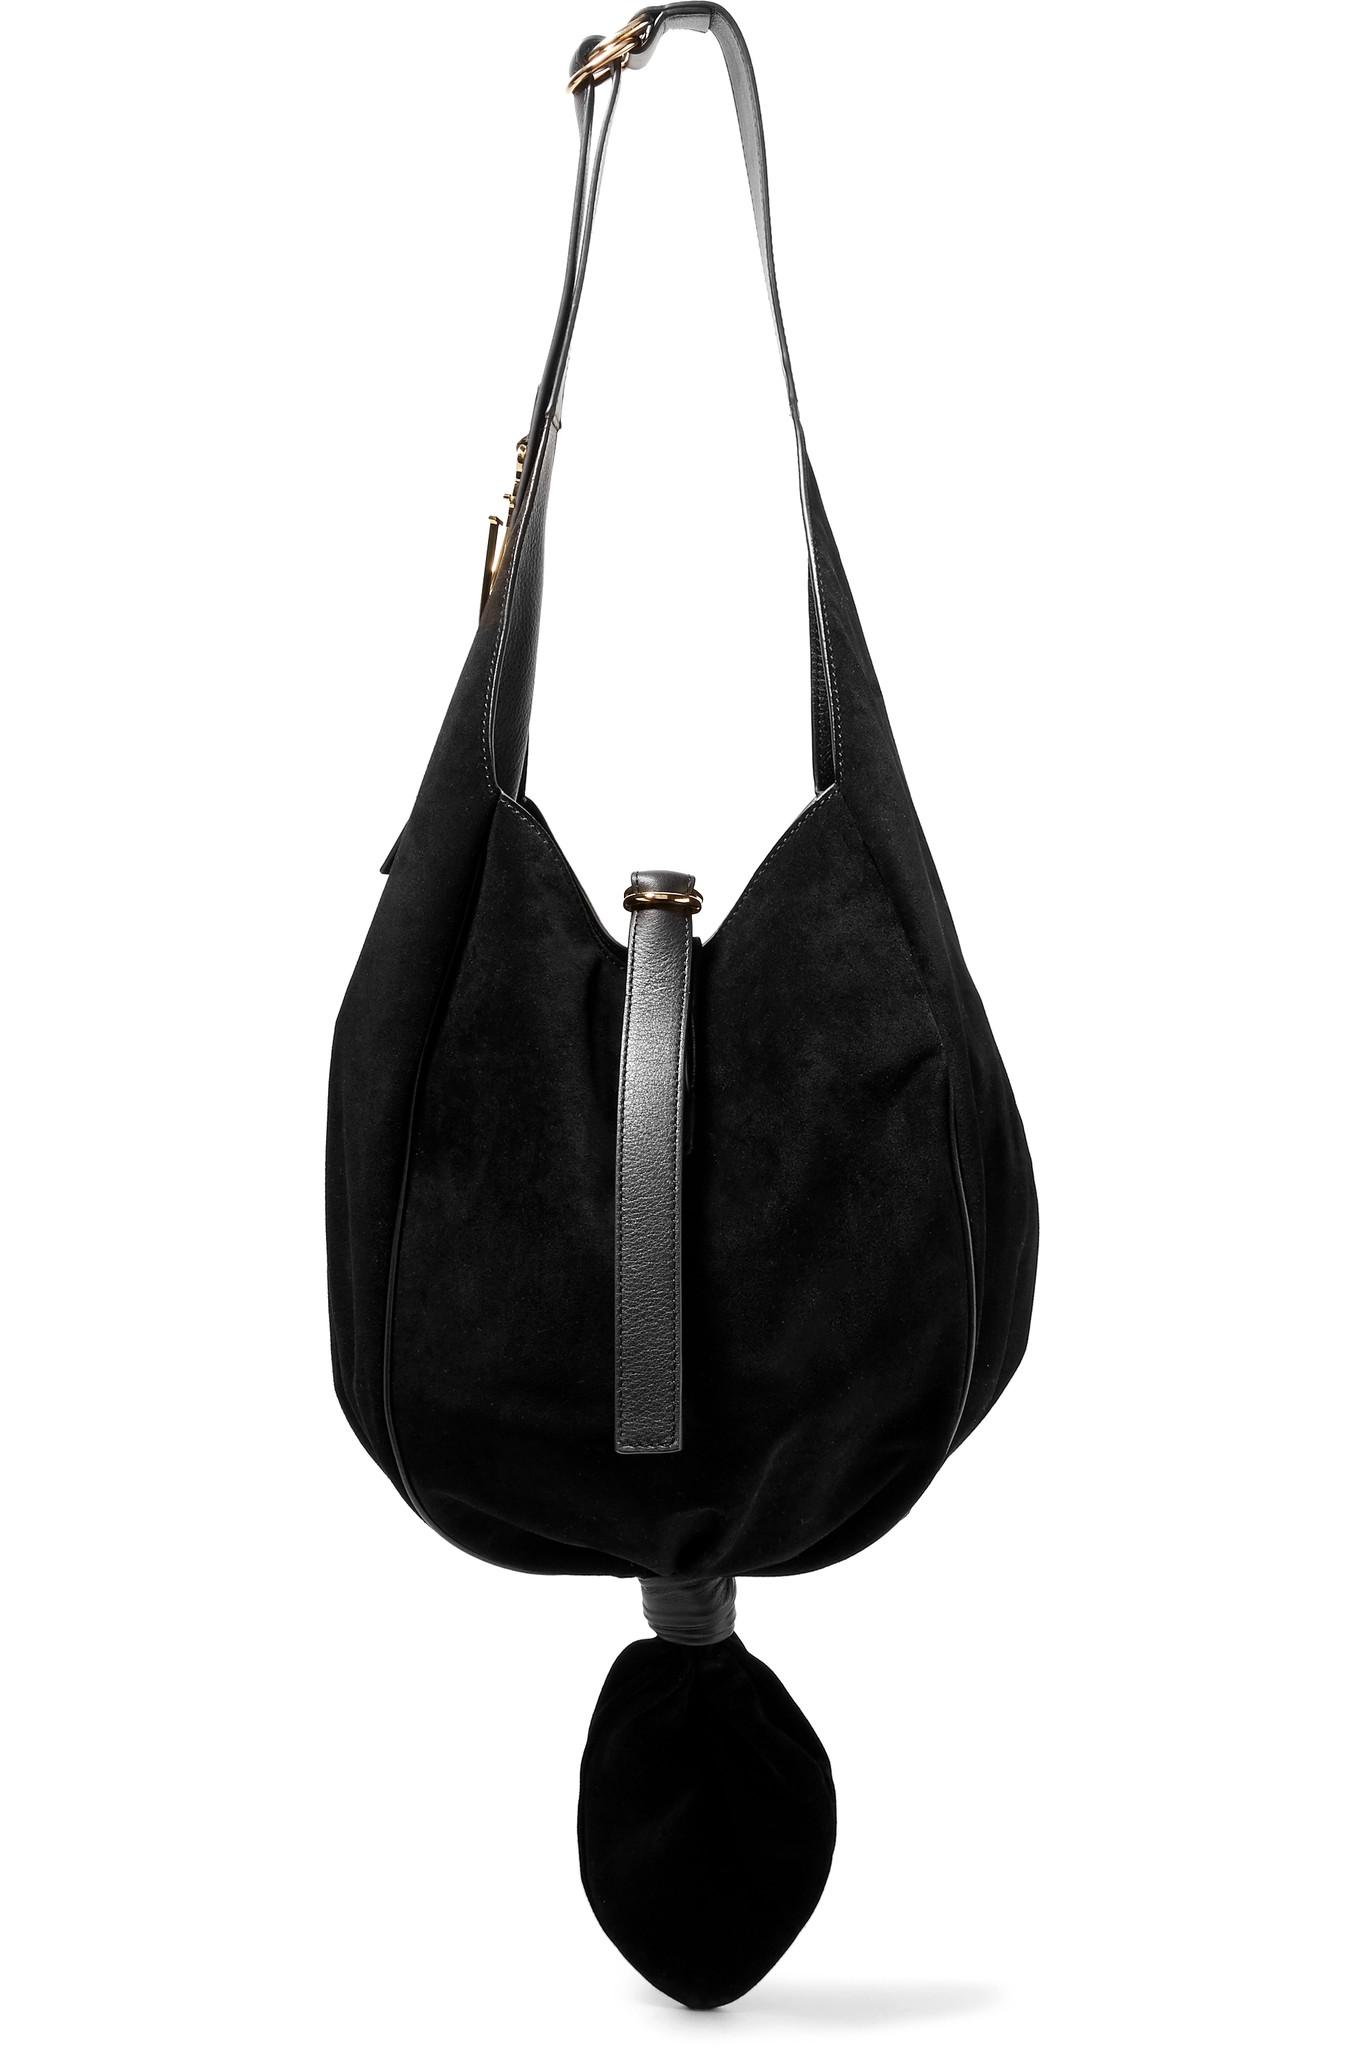 The Knot Logo Hobo Bag - Only One Size / Black J.W.Anderson Clearance Excellent Outlet Sale CYdJS